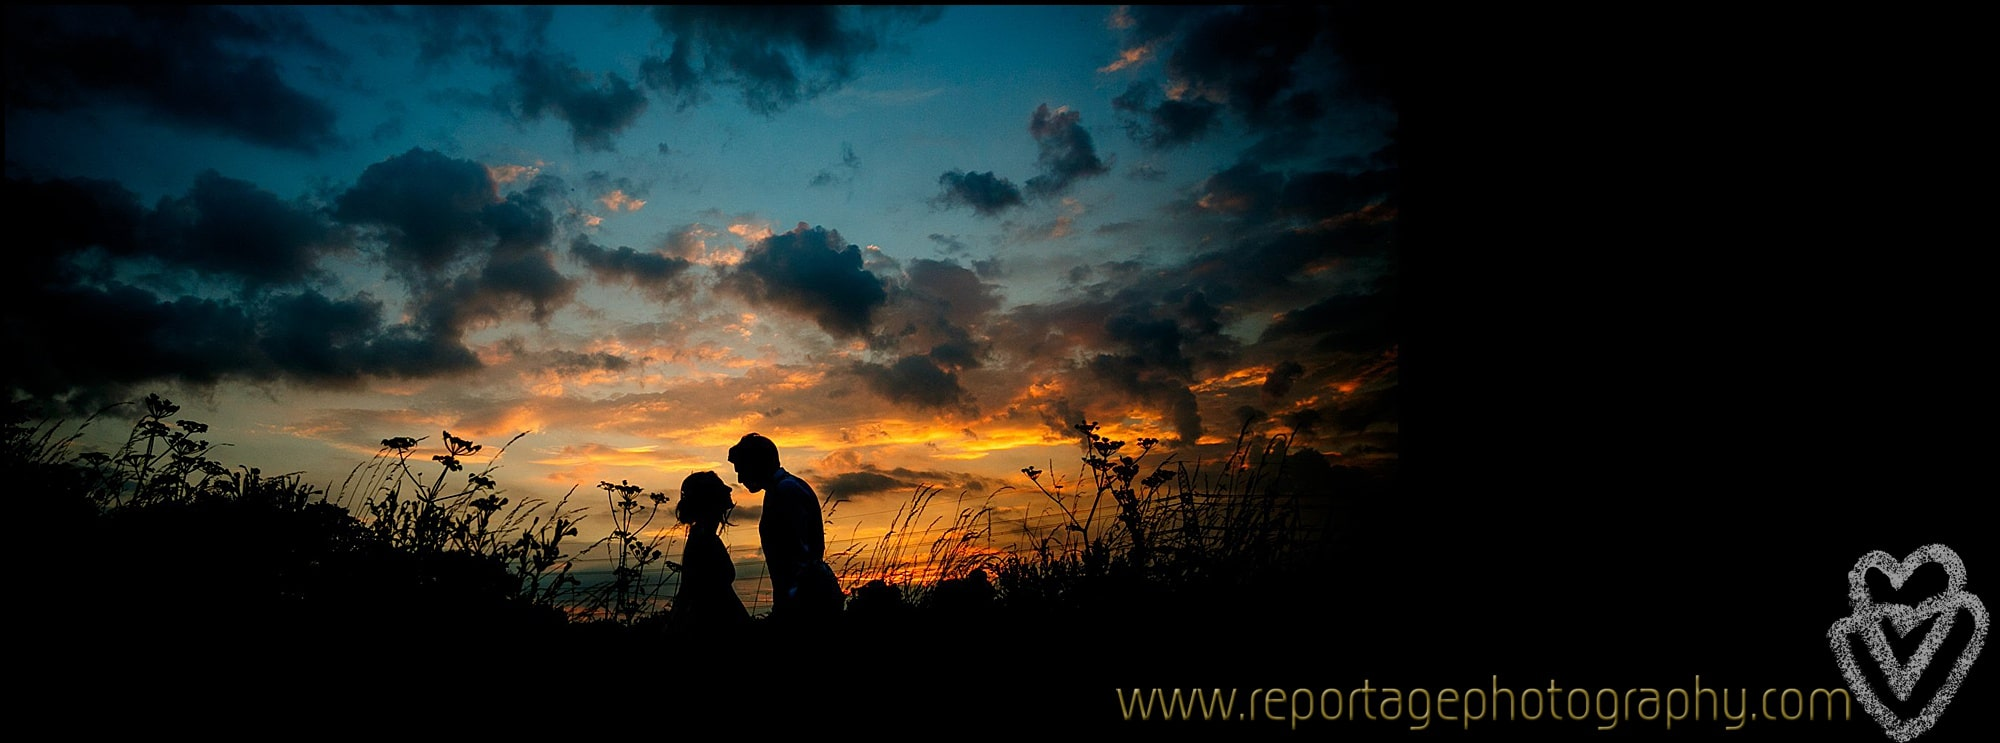 Essex wedding sunset photographer